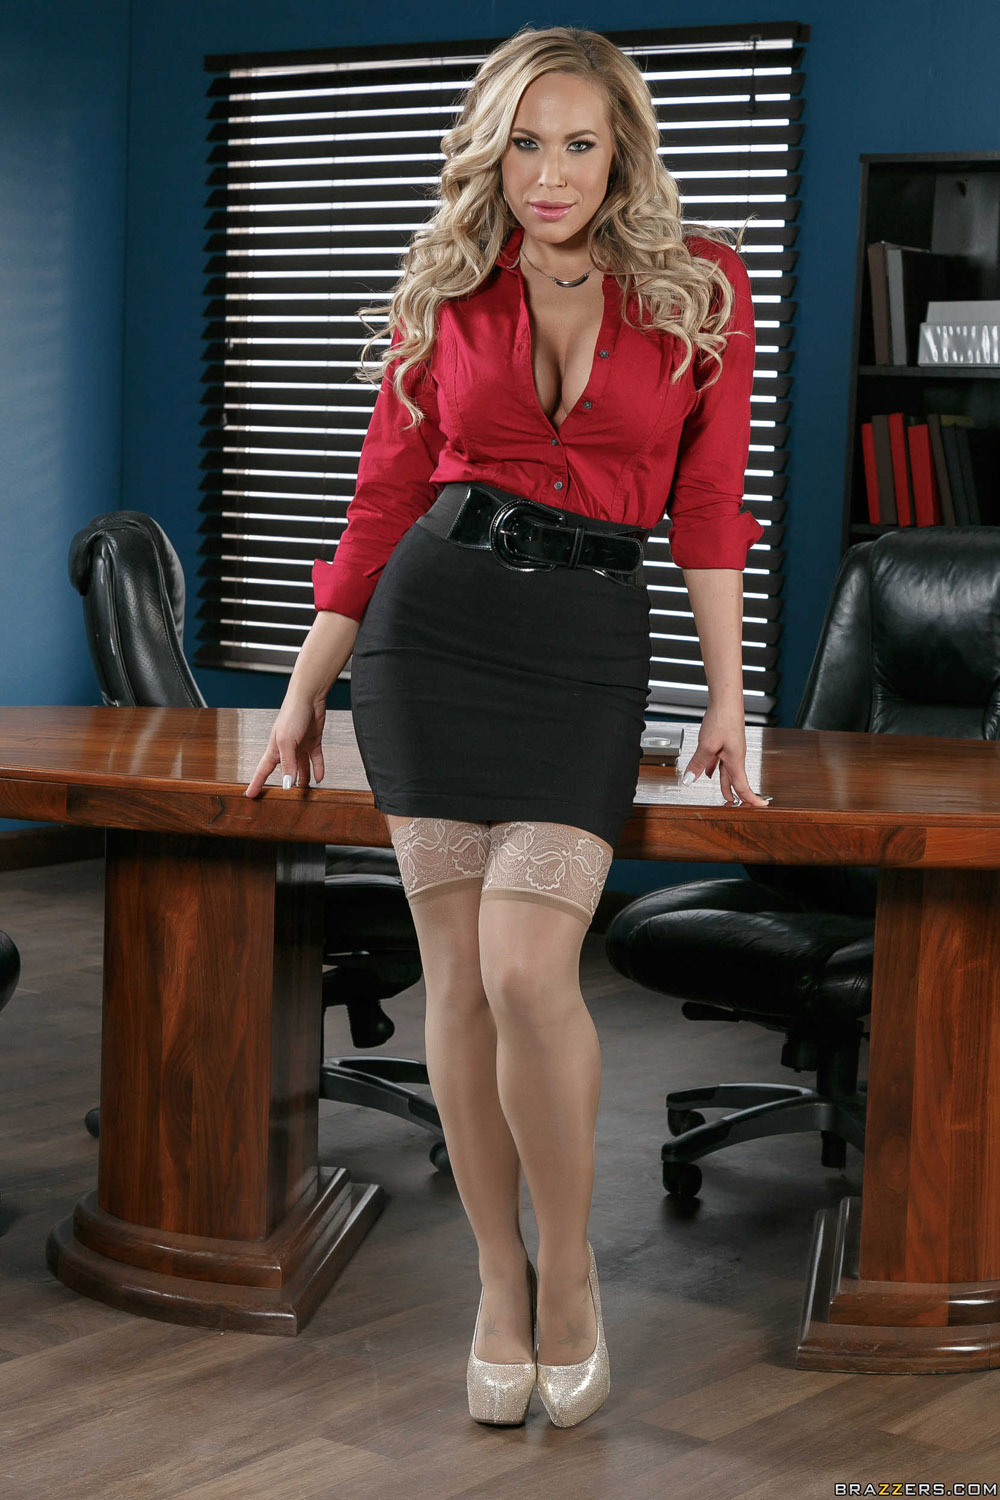 How To Fuck At The Office Olivia Austin